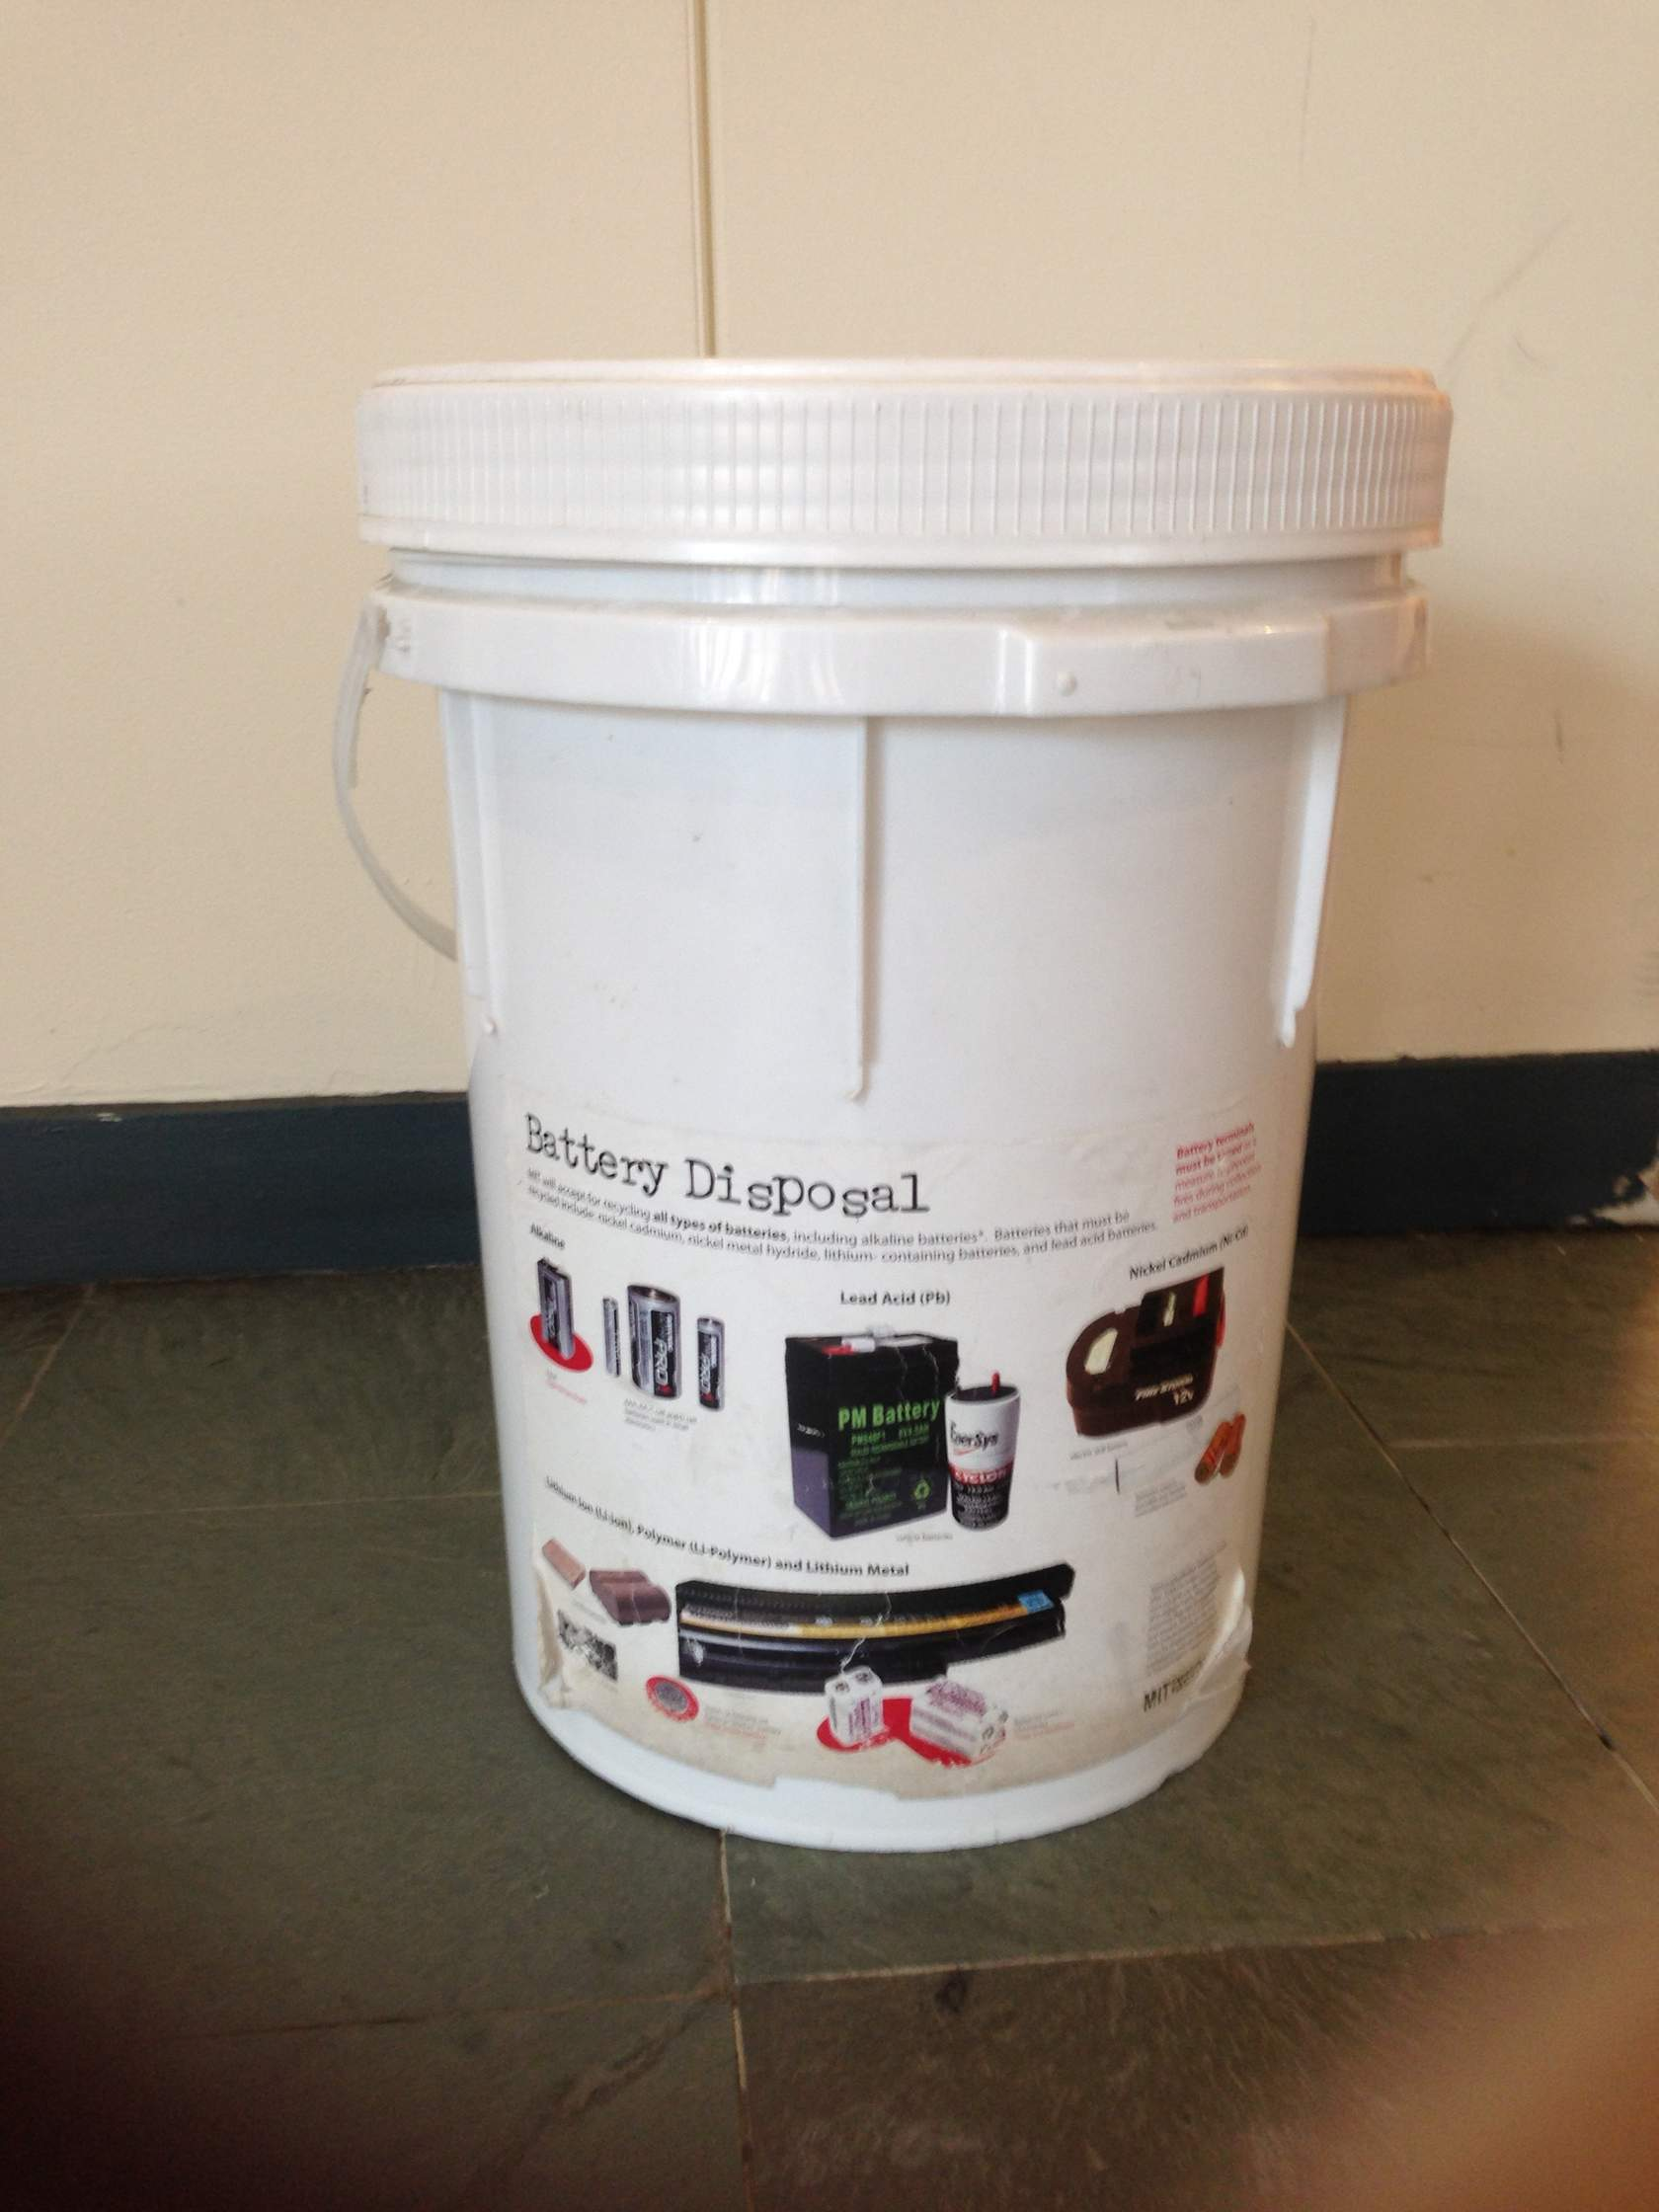 MIT accepts for recycling all types of batteries, including alkaline batteries. - Battery disposal bins are located in Distributed Mail Centersand all residence halls. The Student Center basement also has receptacles.